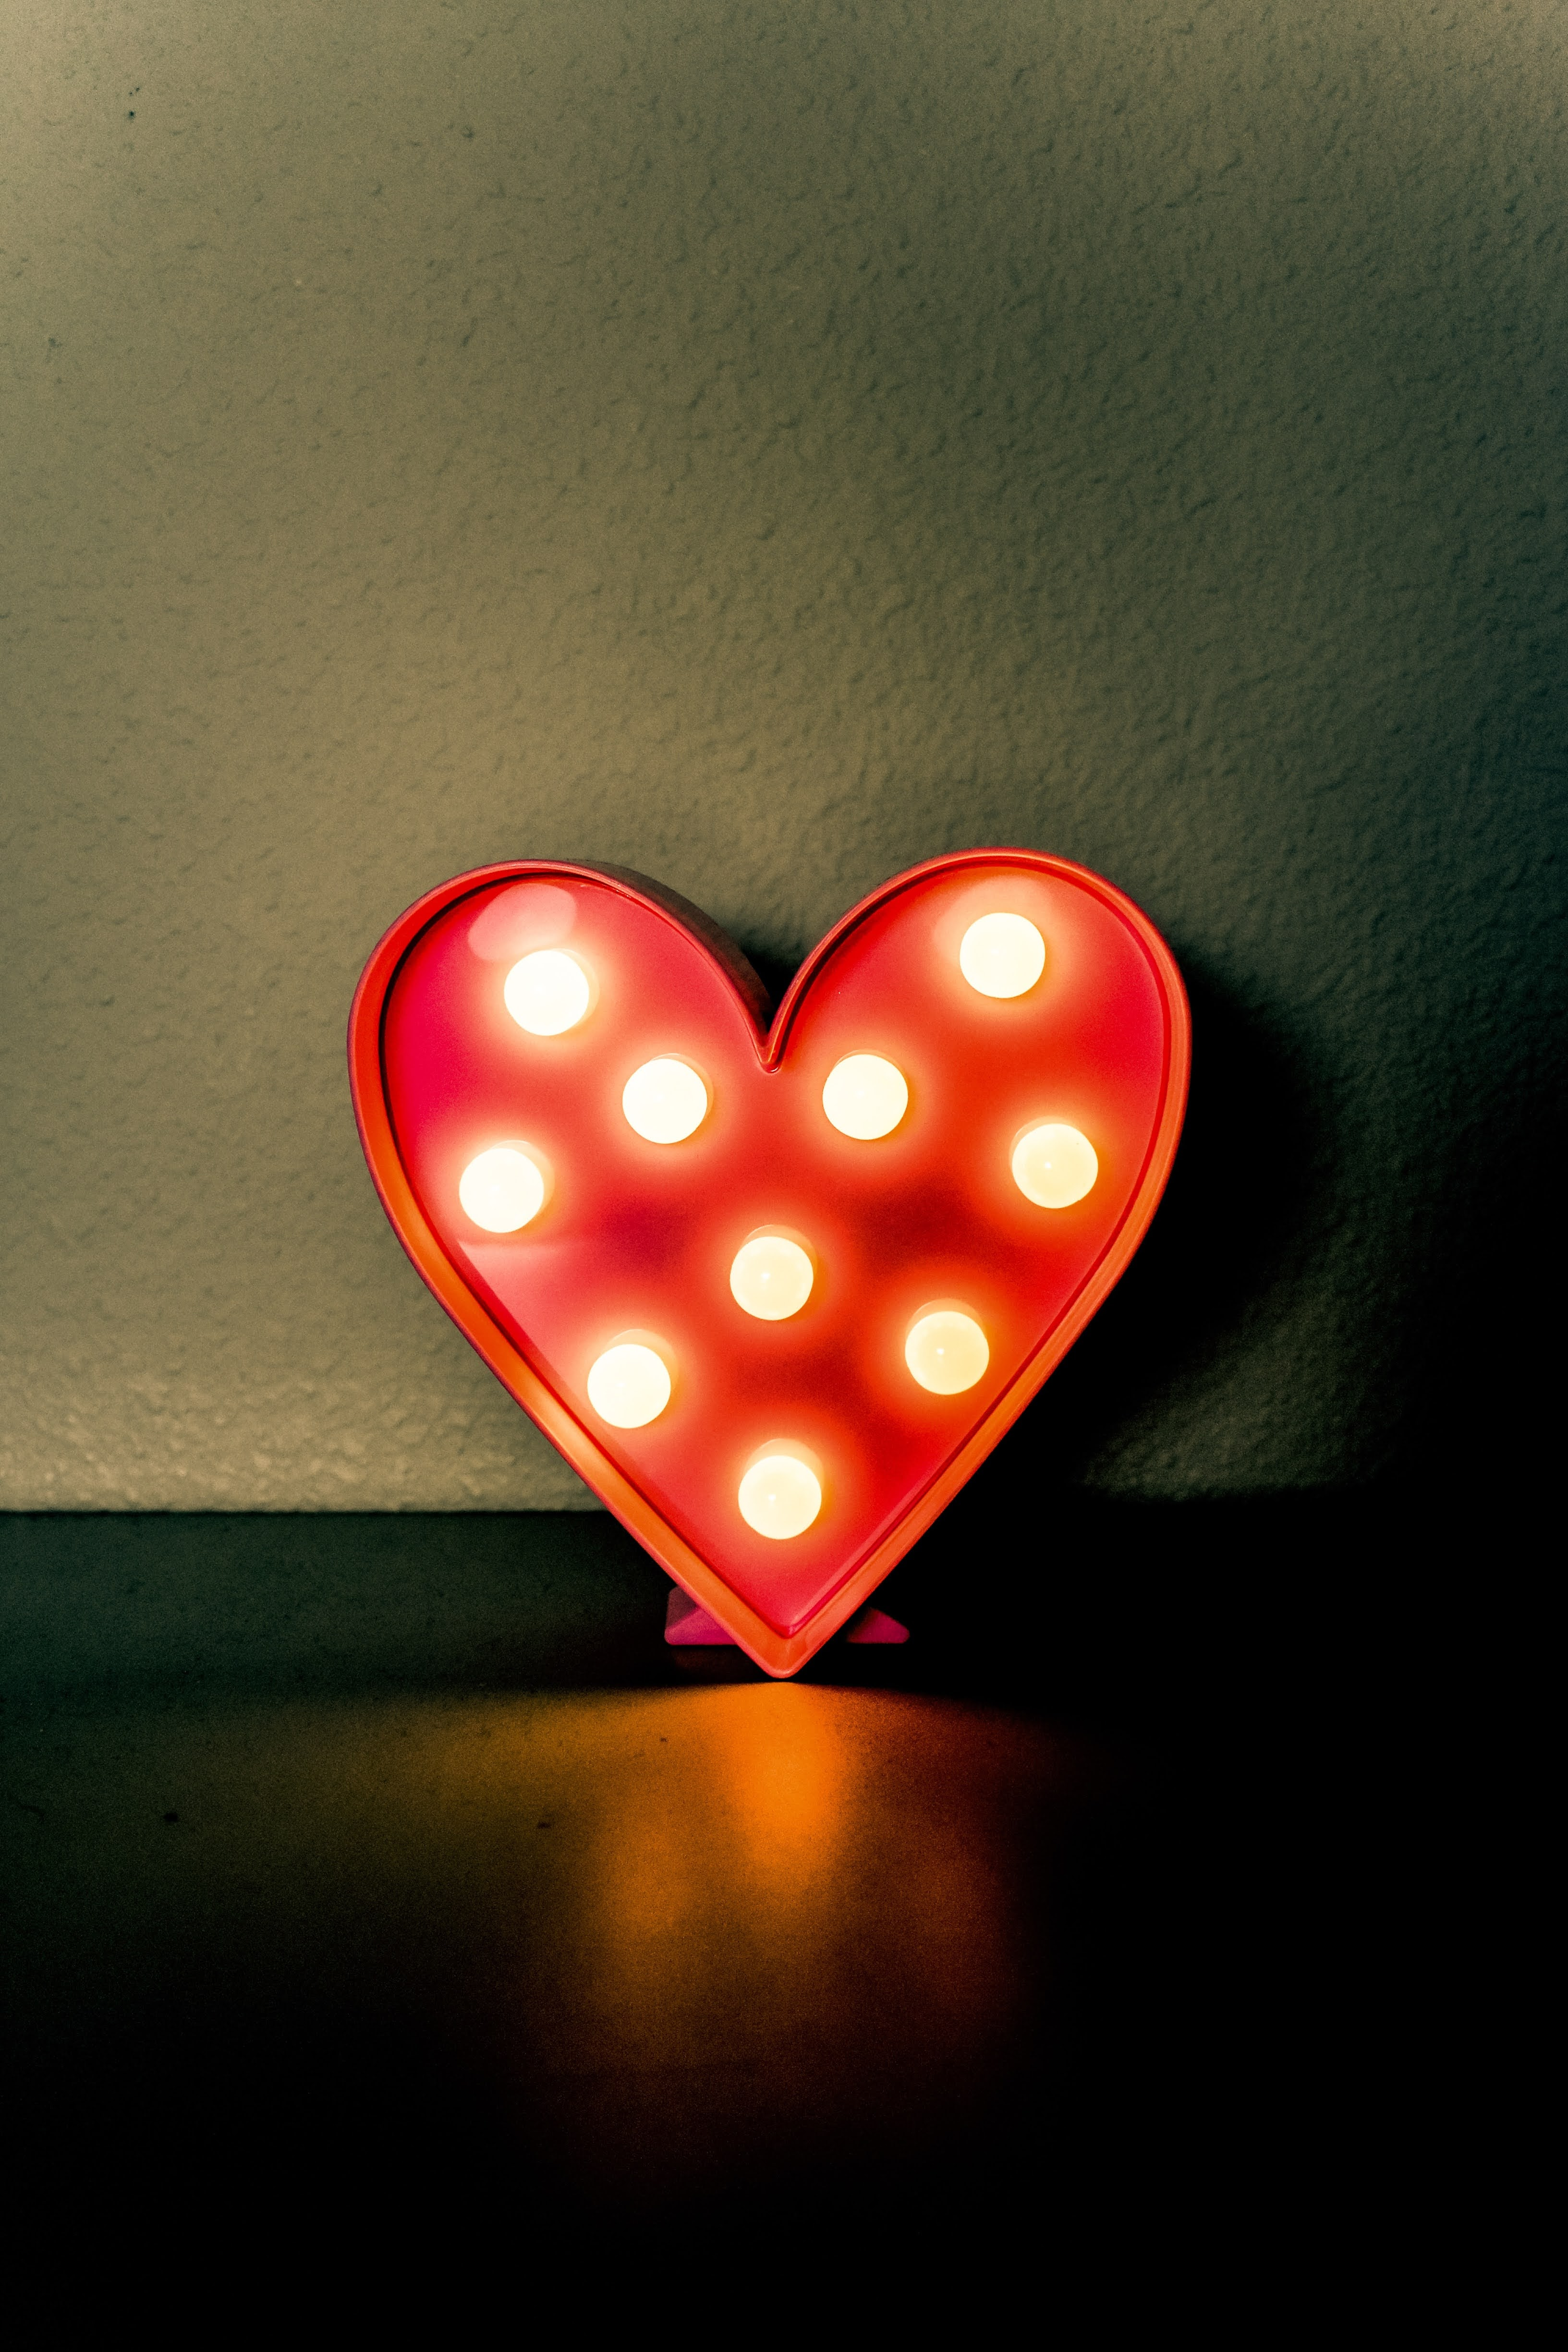 Red and White LED Lighted Heart Decor | Photo by Izumi Lacorte via Unsplash